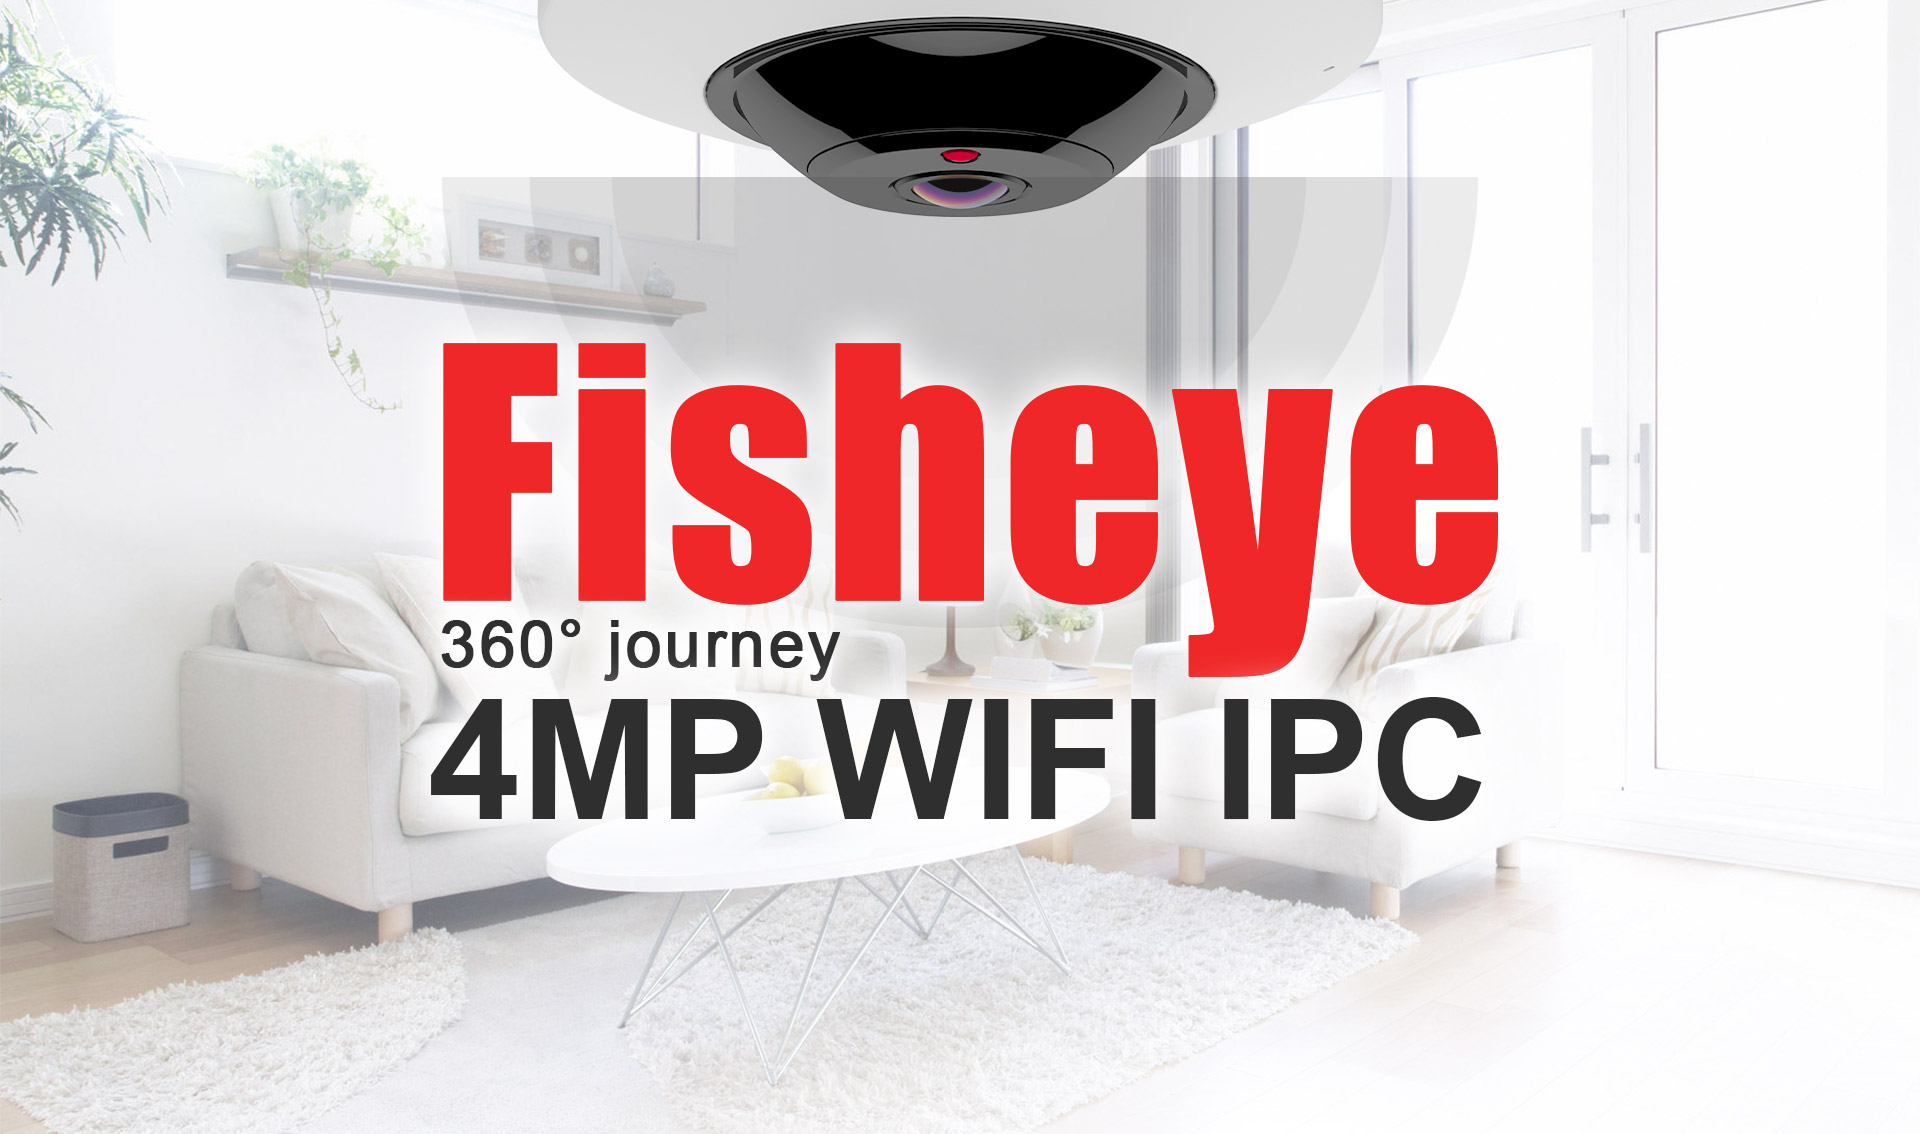 Longse 4MP Wi-Fi Fisheye Camera, 360°journey with new app - Longse